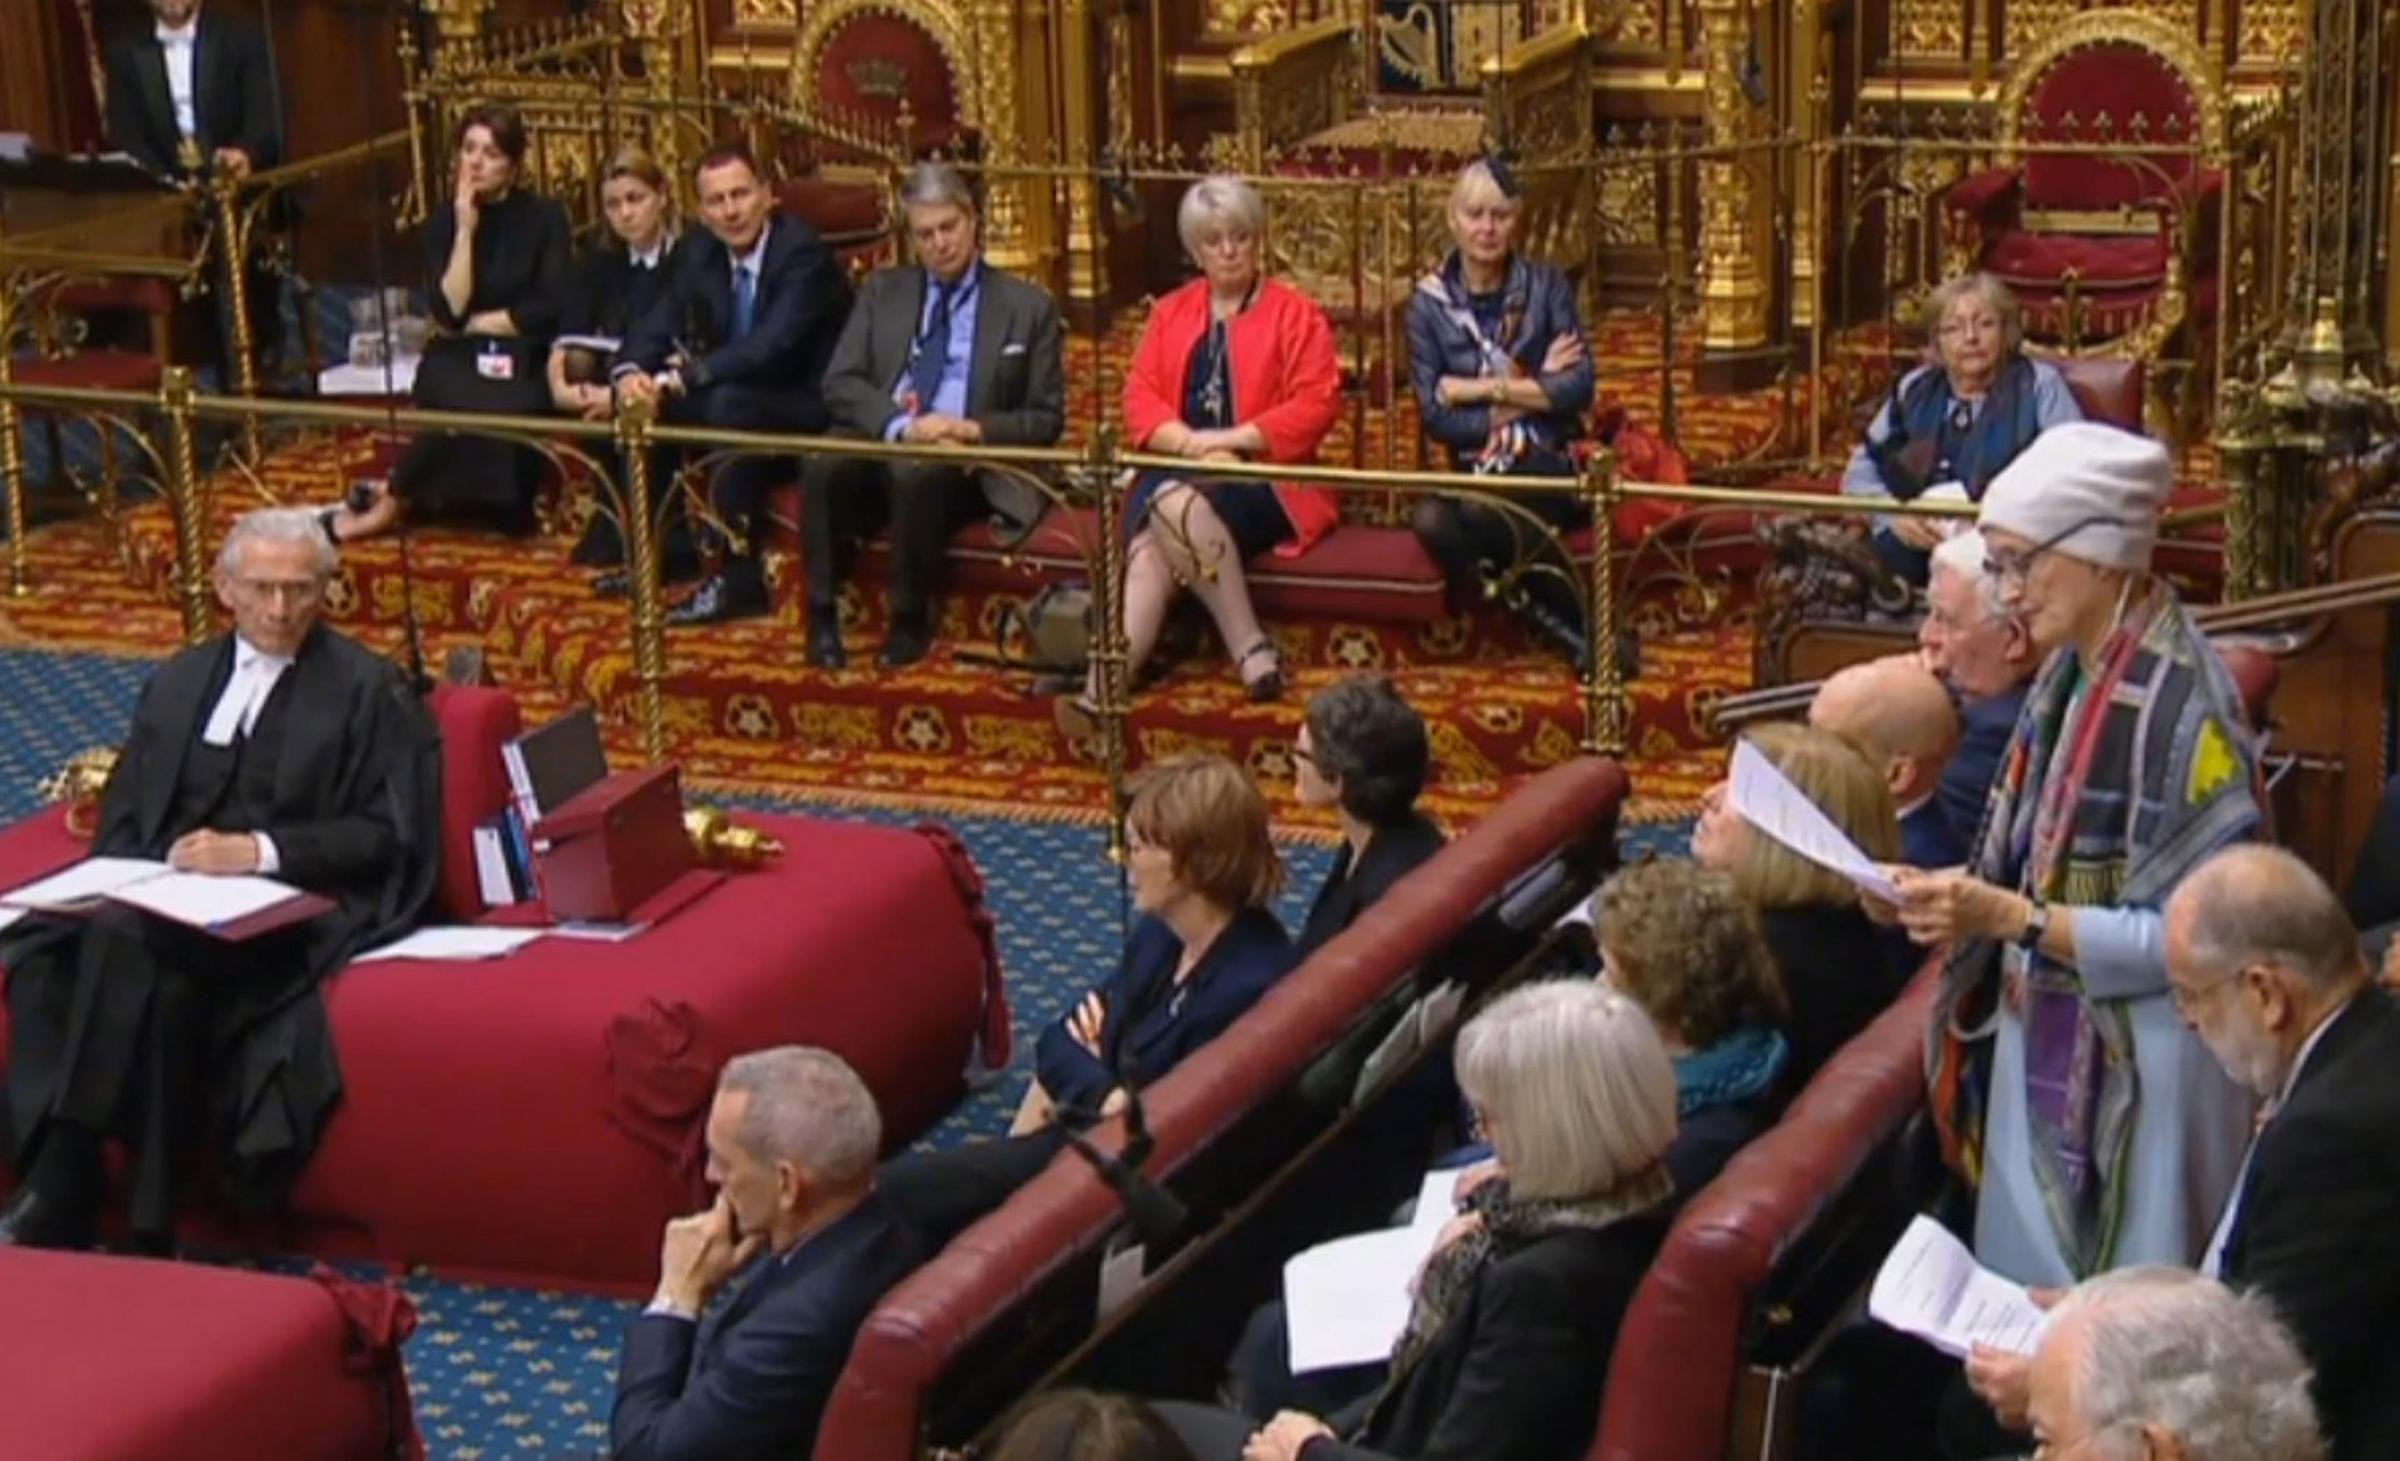 Former Labour frontbencher Tessa Jowell was popular across the political divide and her speech to the House of Lords led to her being given a much-deserved standing ovation